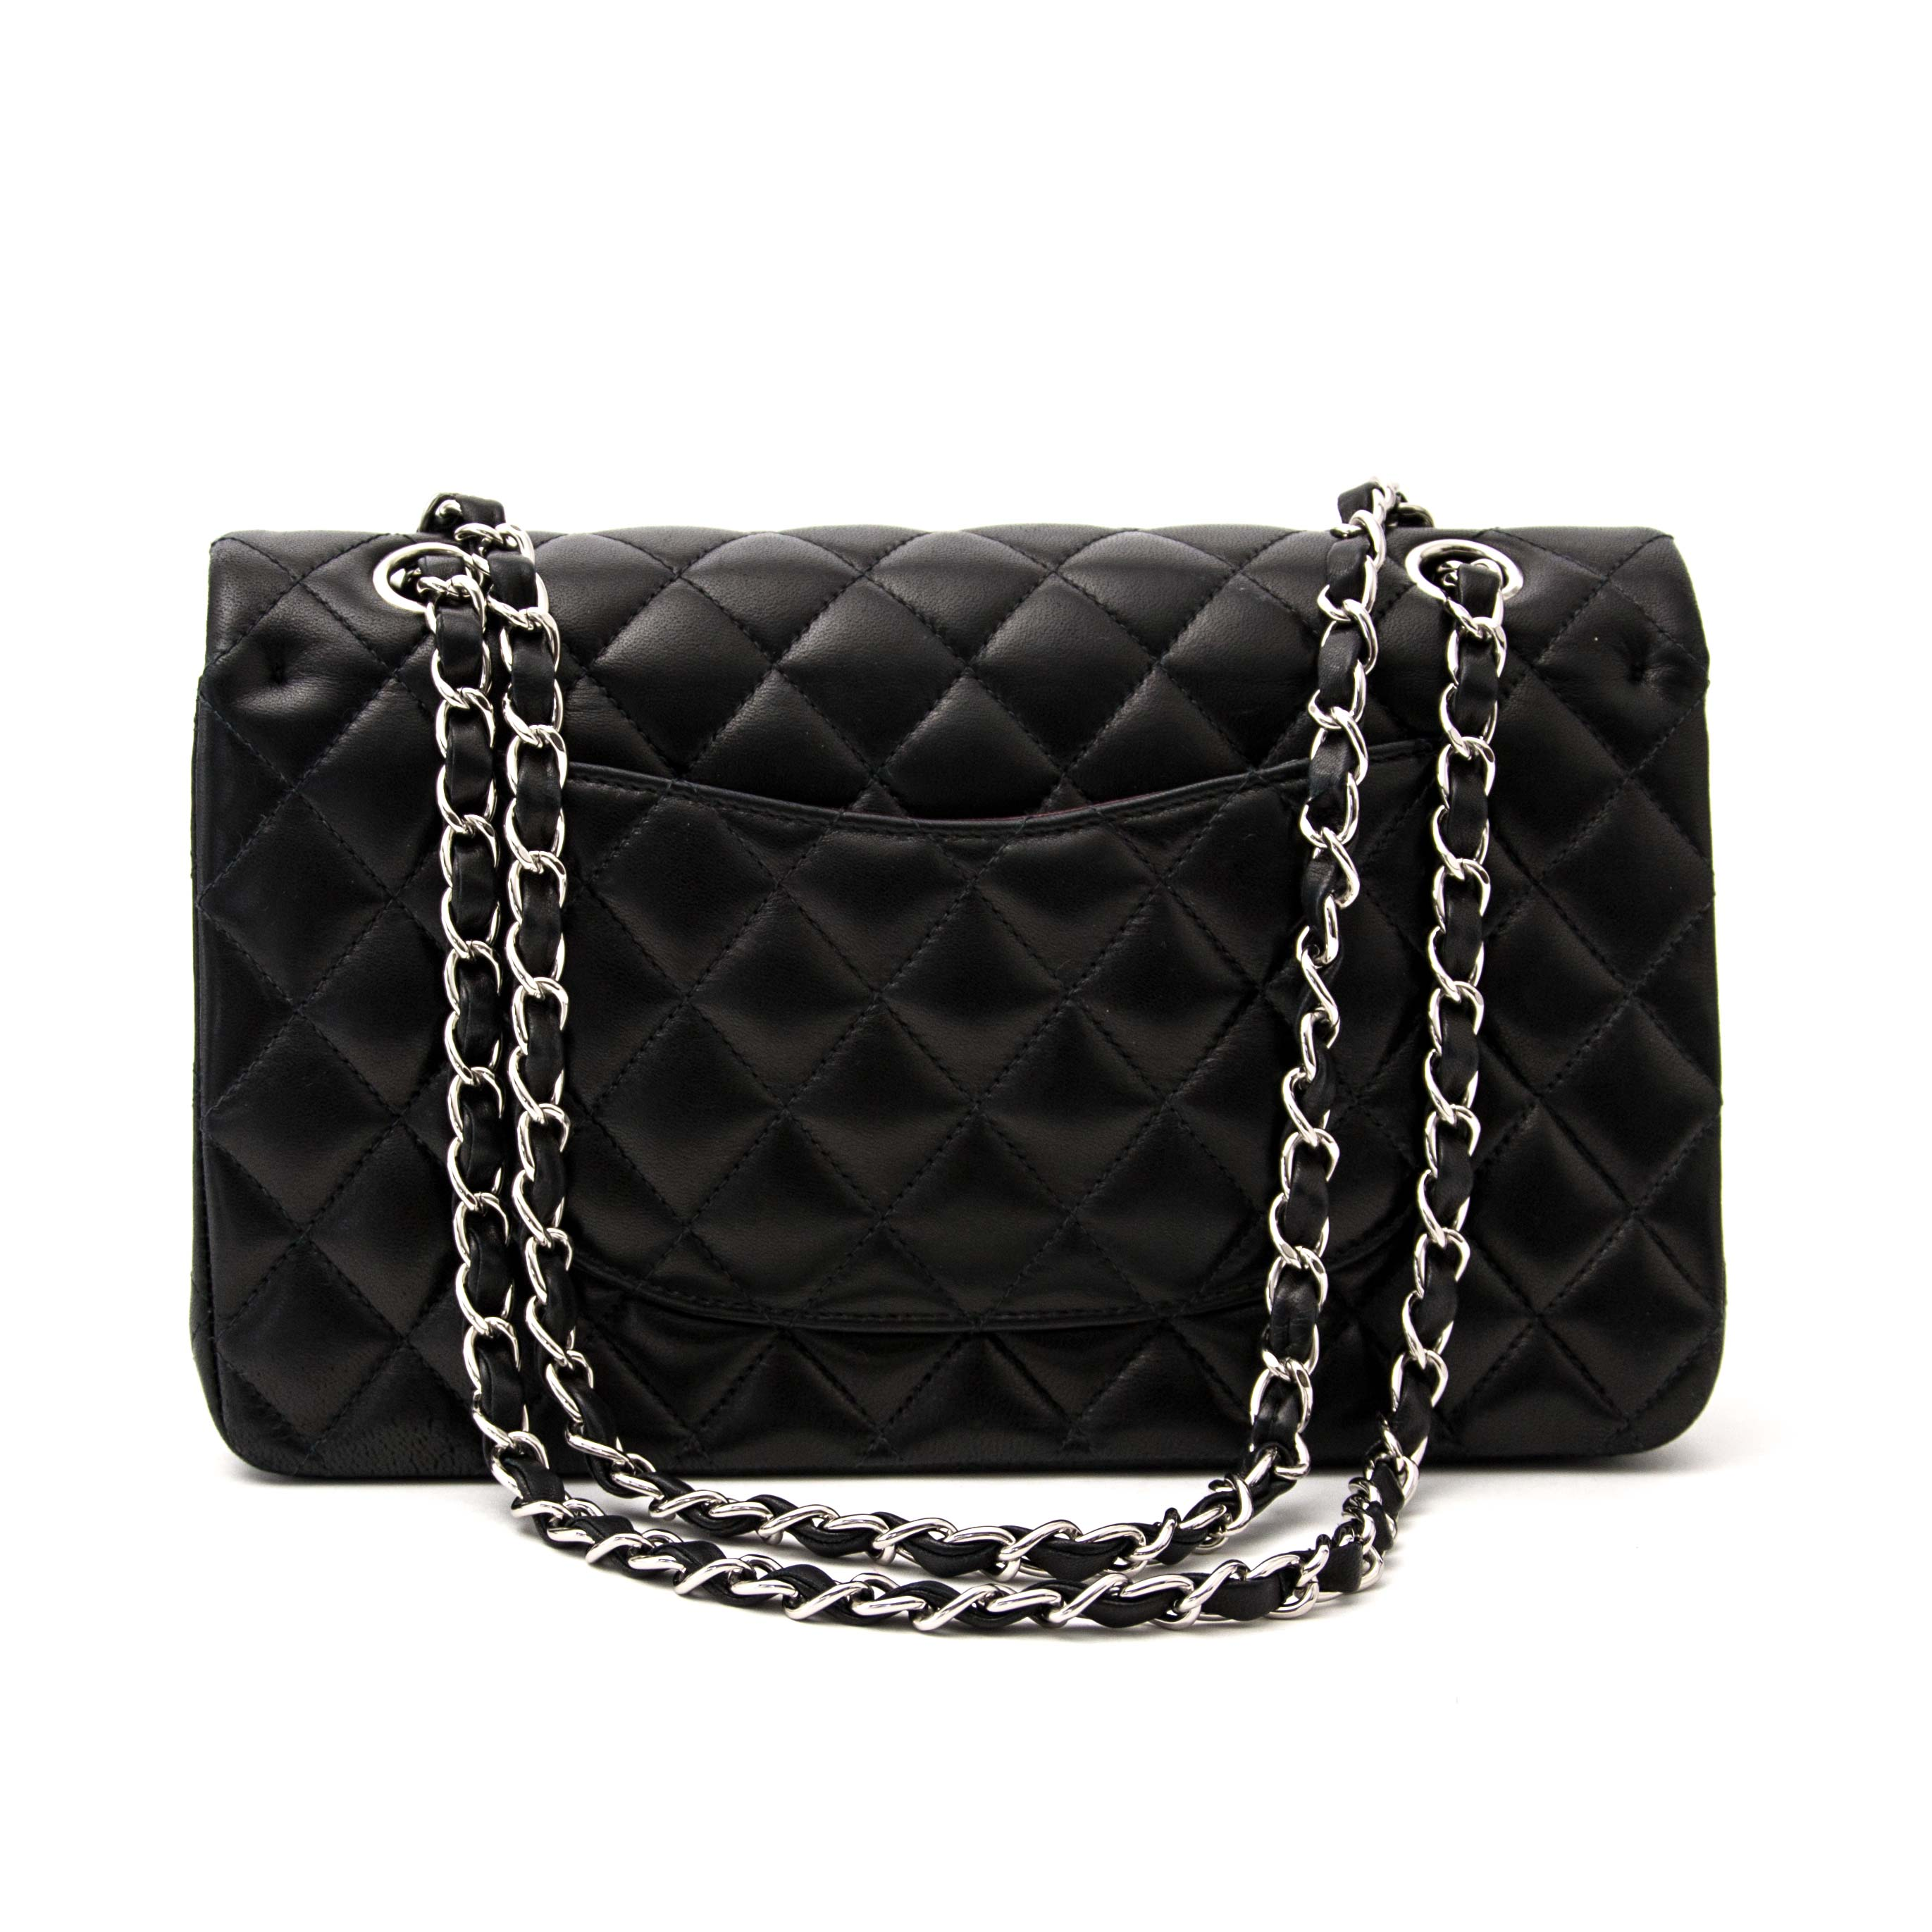 Chanel Classic Flap Bag Medium Calfskin PHW for sale online